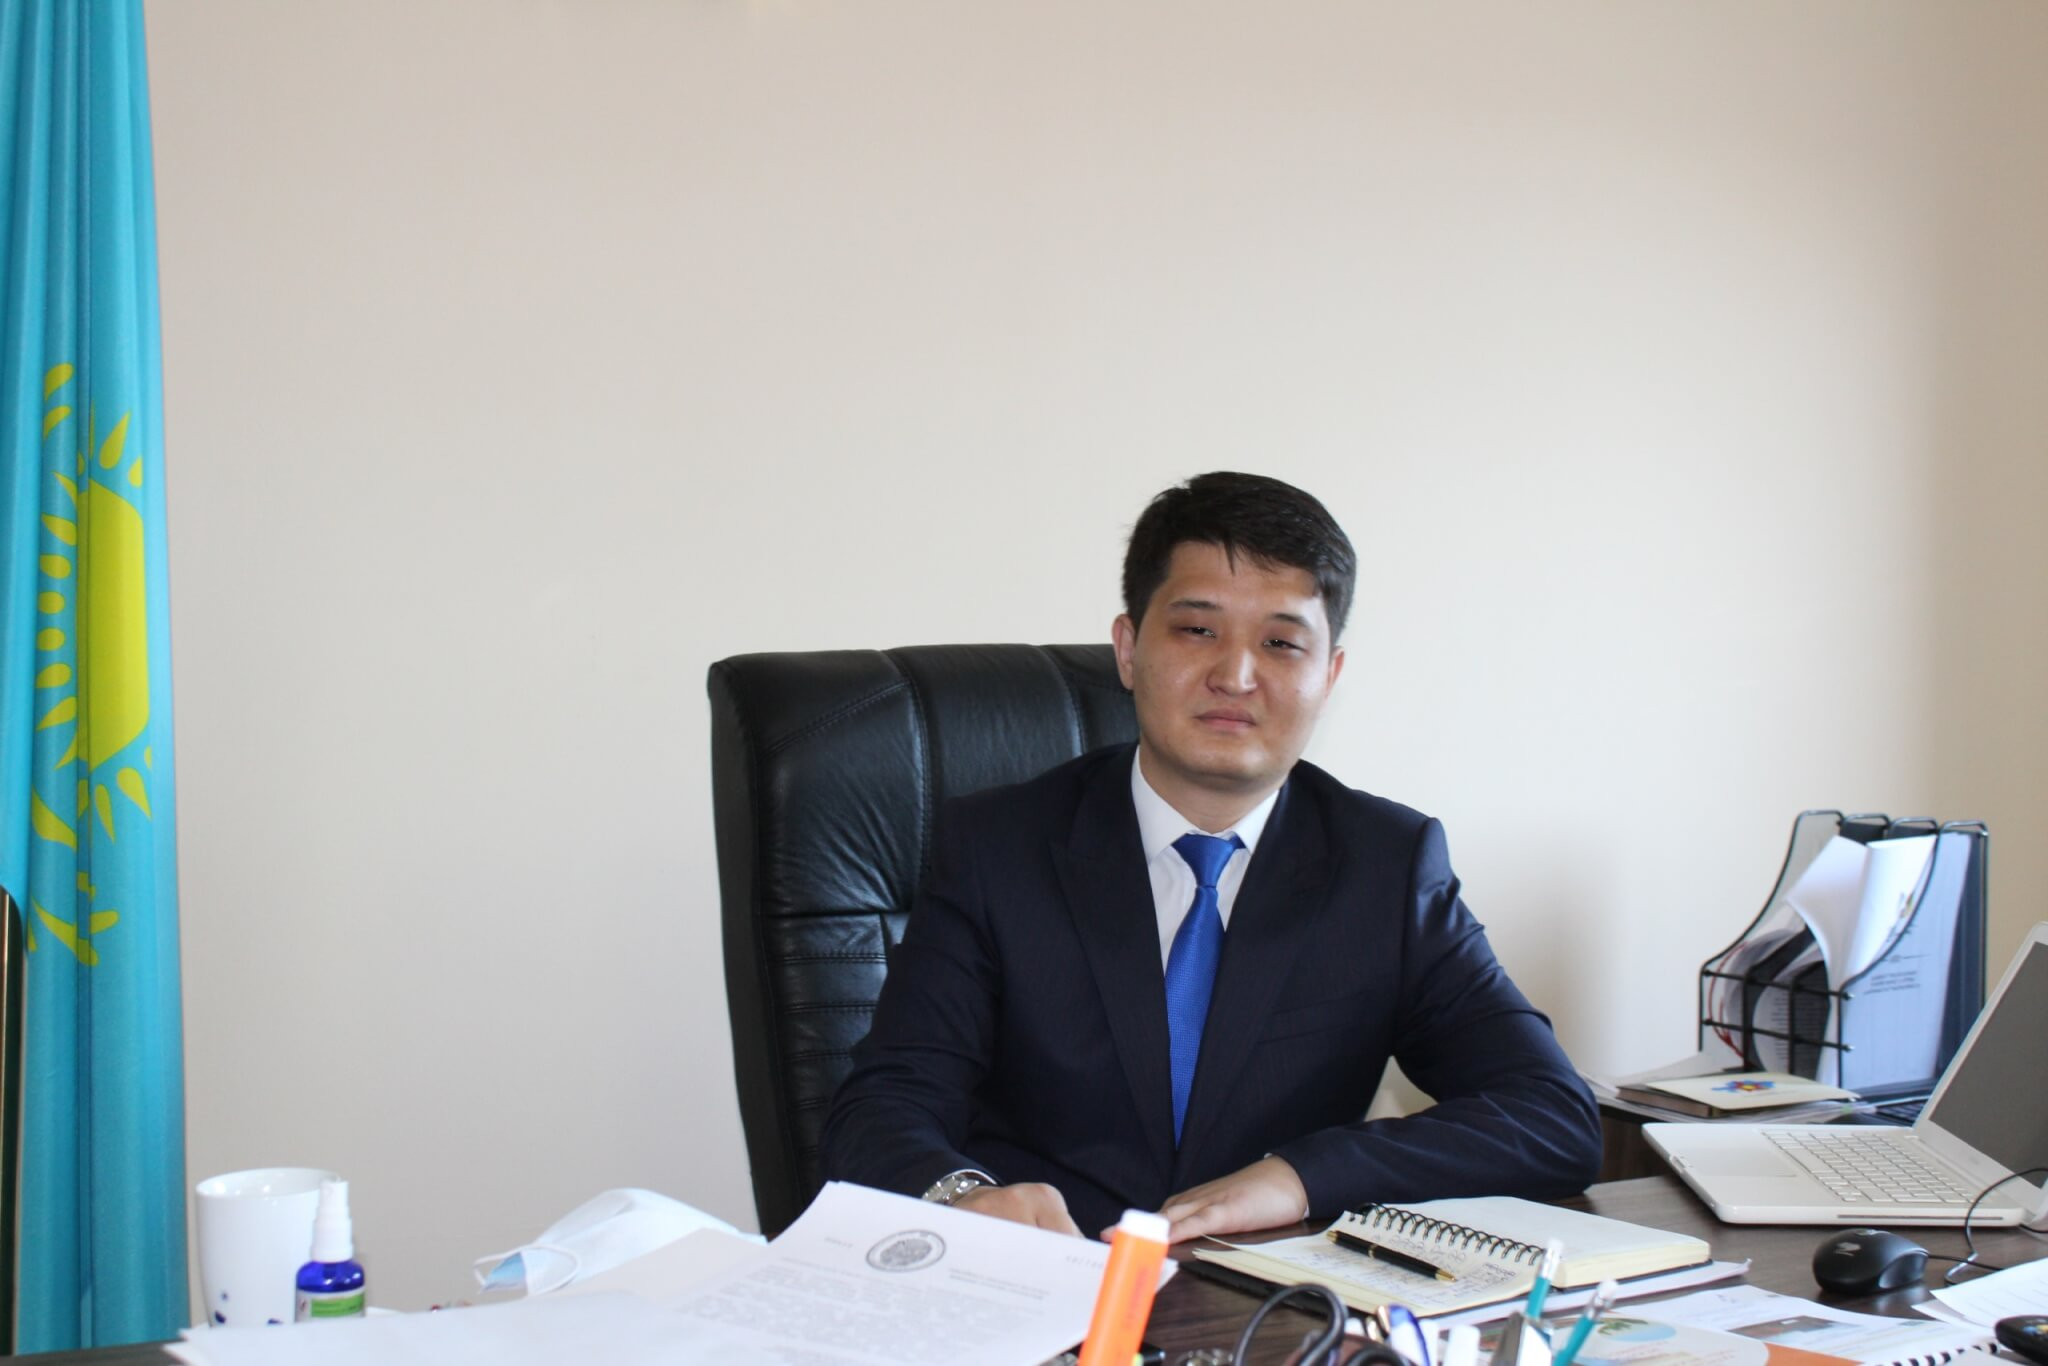 Info Shymkent - Head of Tourism Department in Shymkent